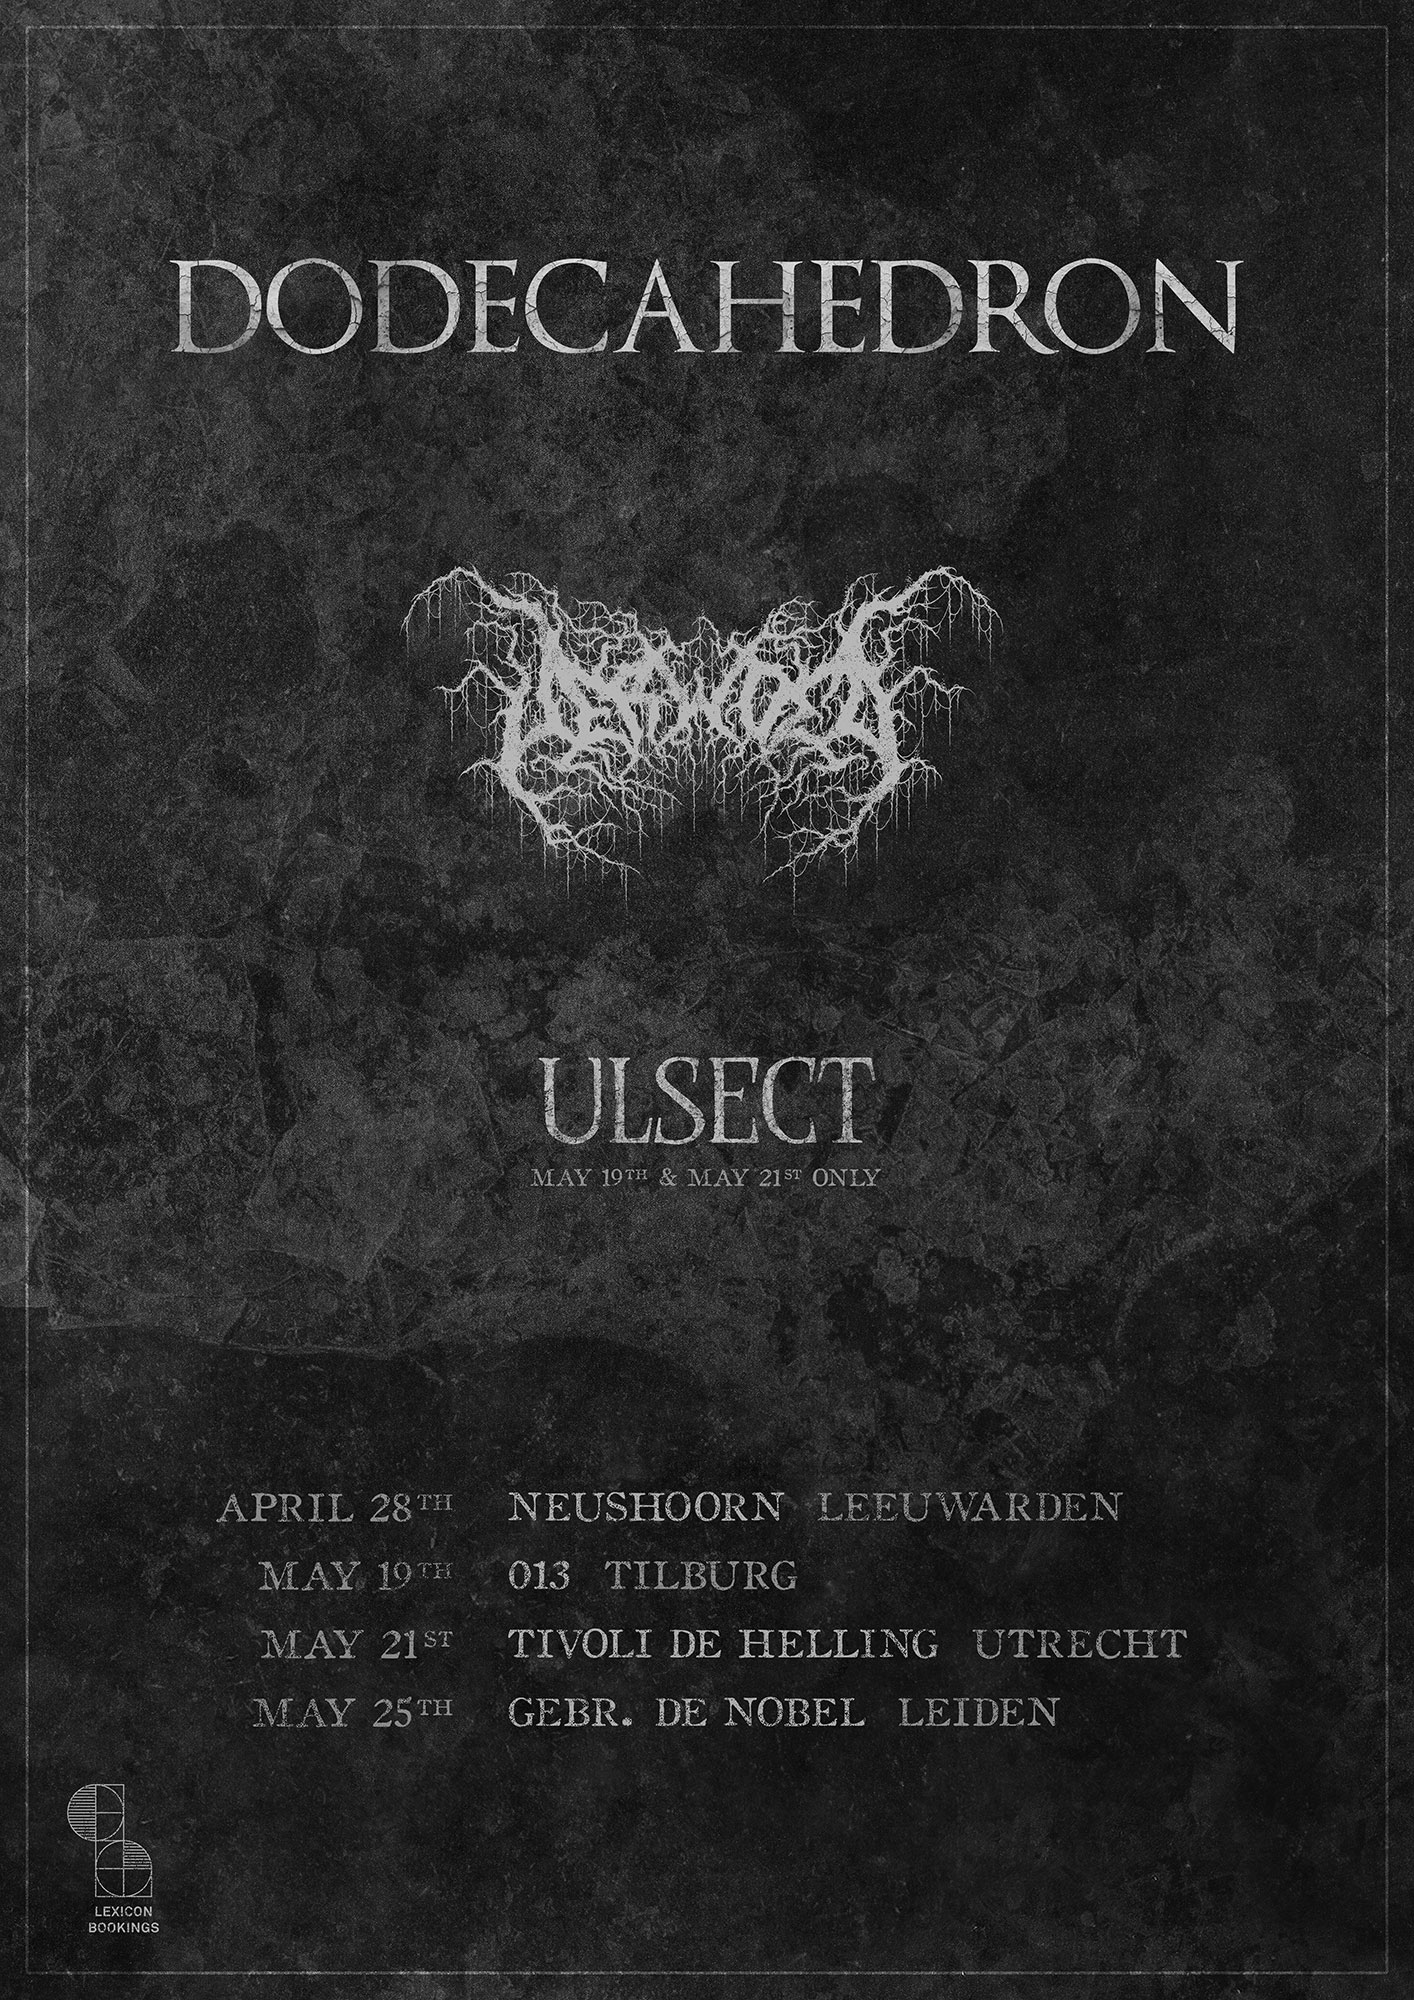 Dodecahedron Verwoed Ulsect